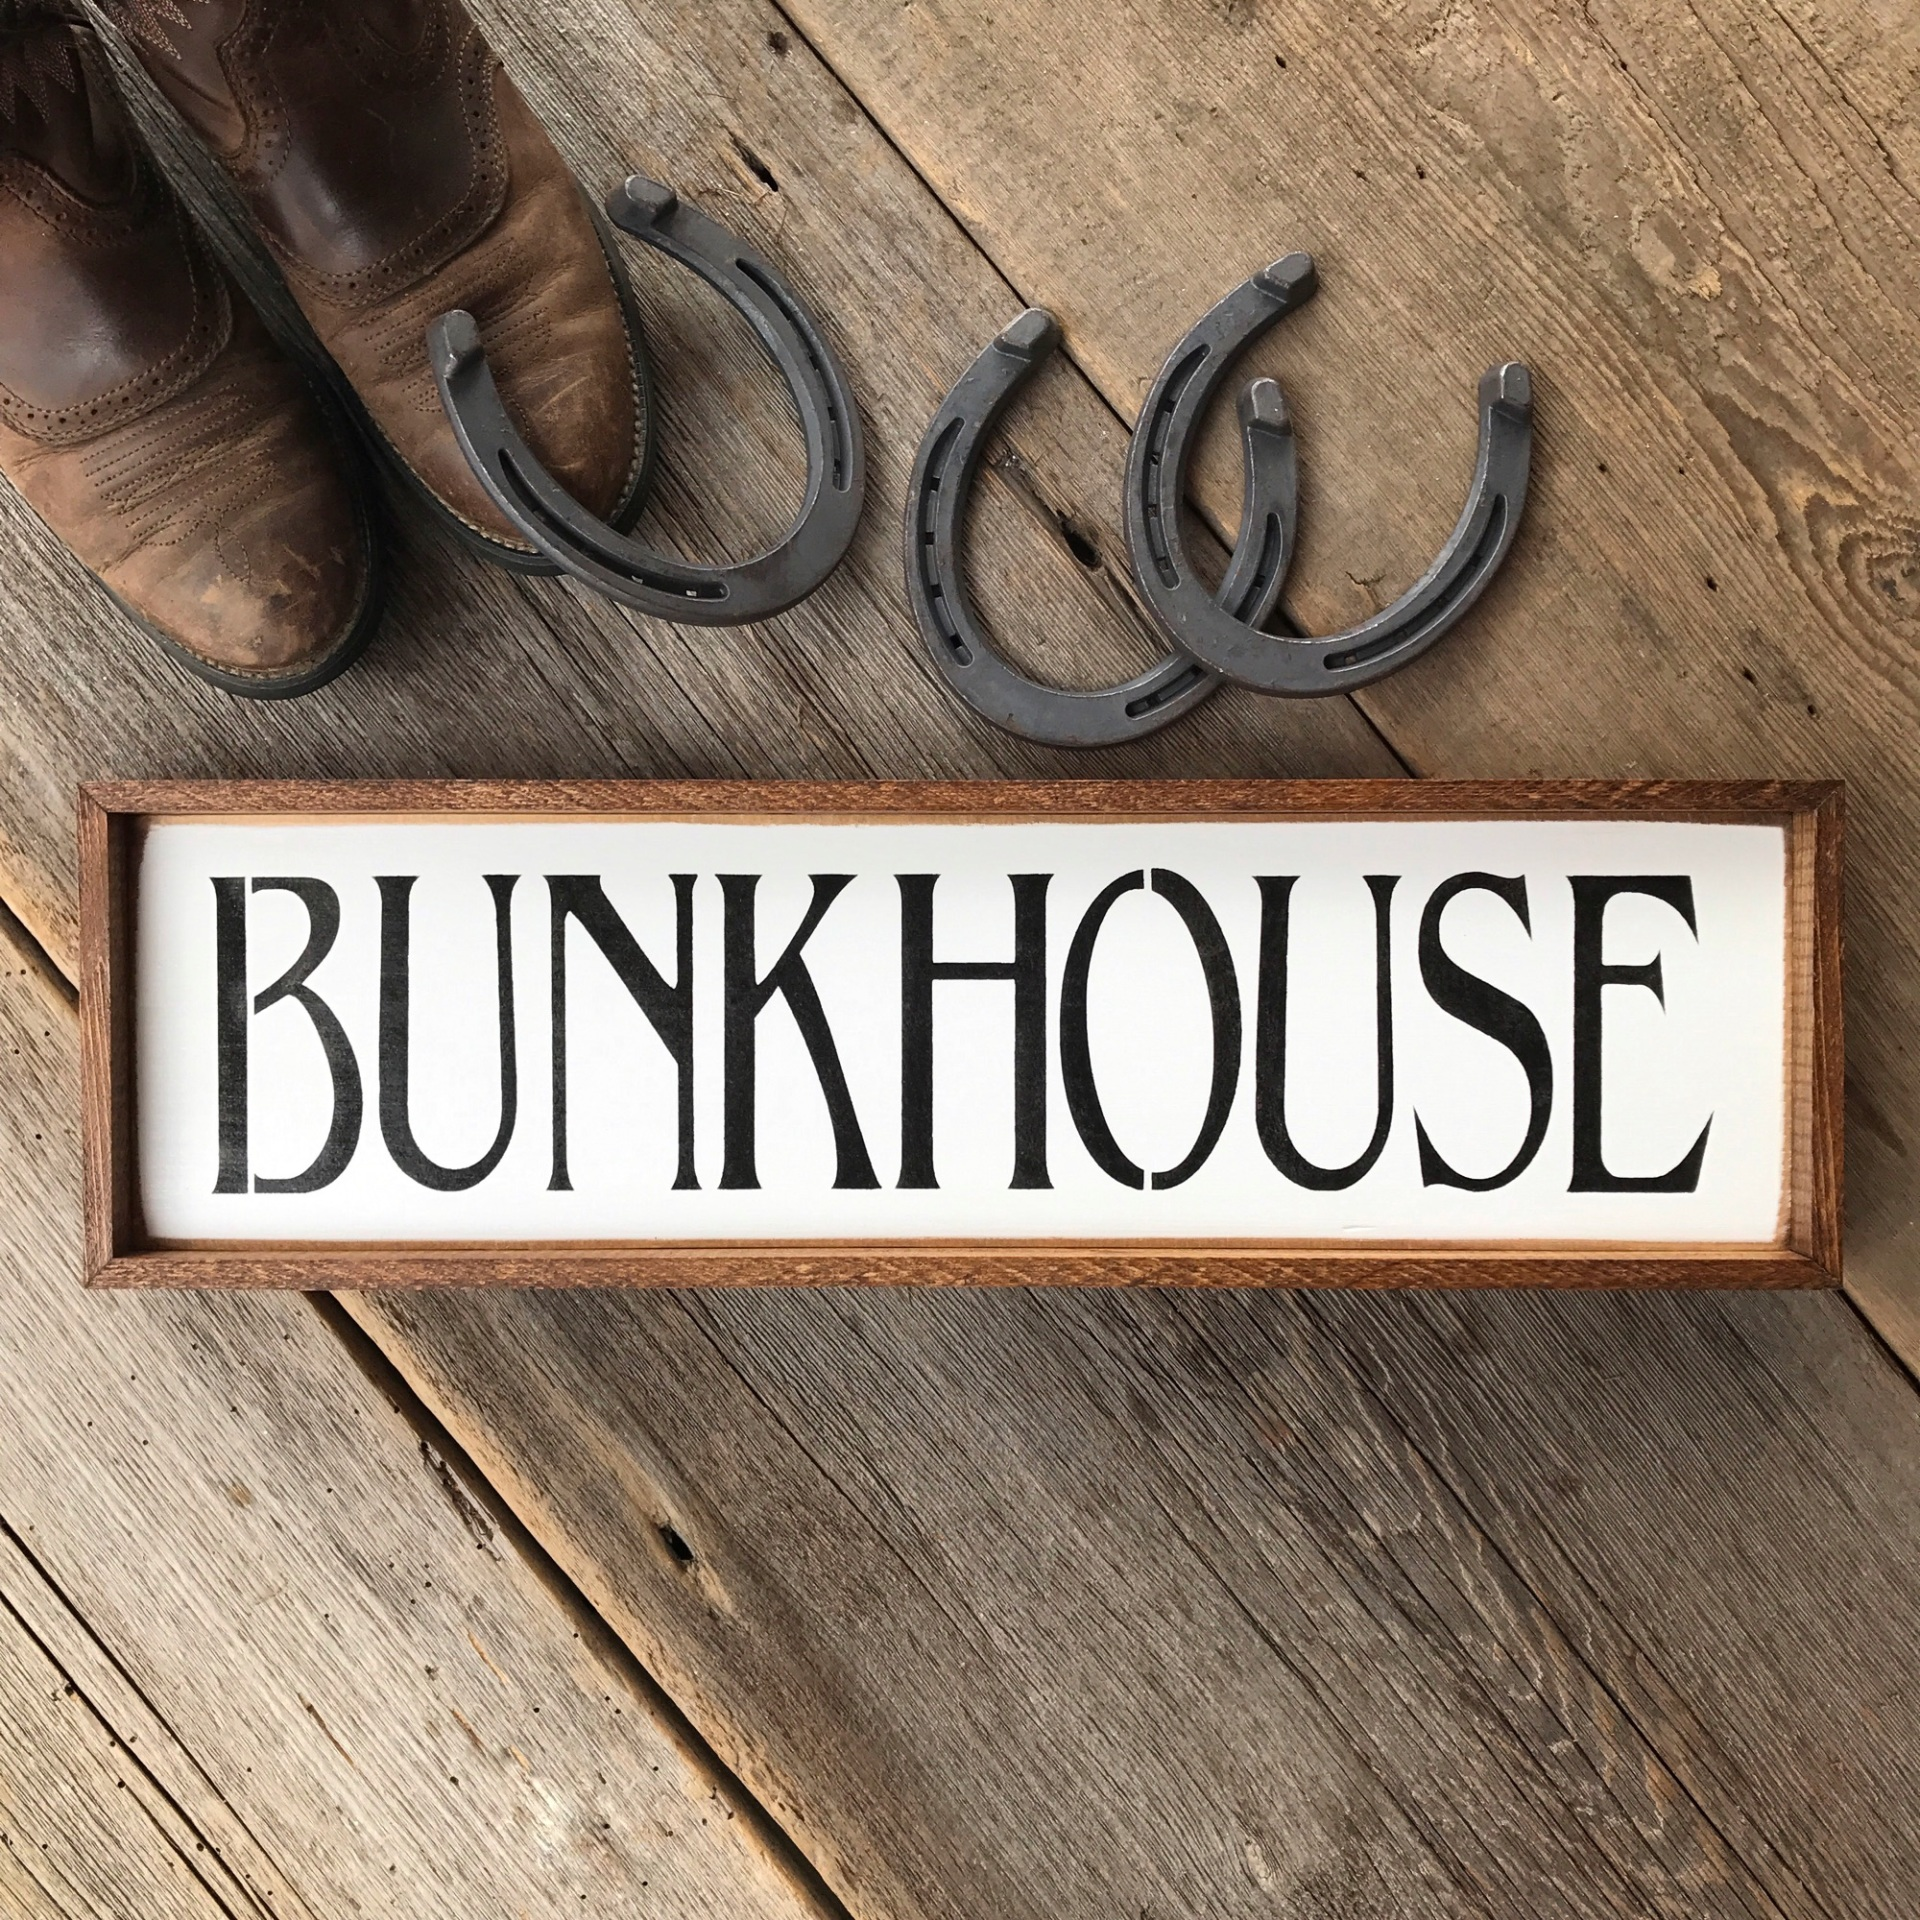 Bunkhouse, Wood Signs, Western Home Decor, Western Ranch Decor, Front Door, Porch, Entryway Decor